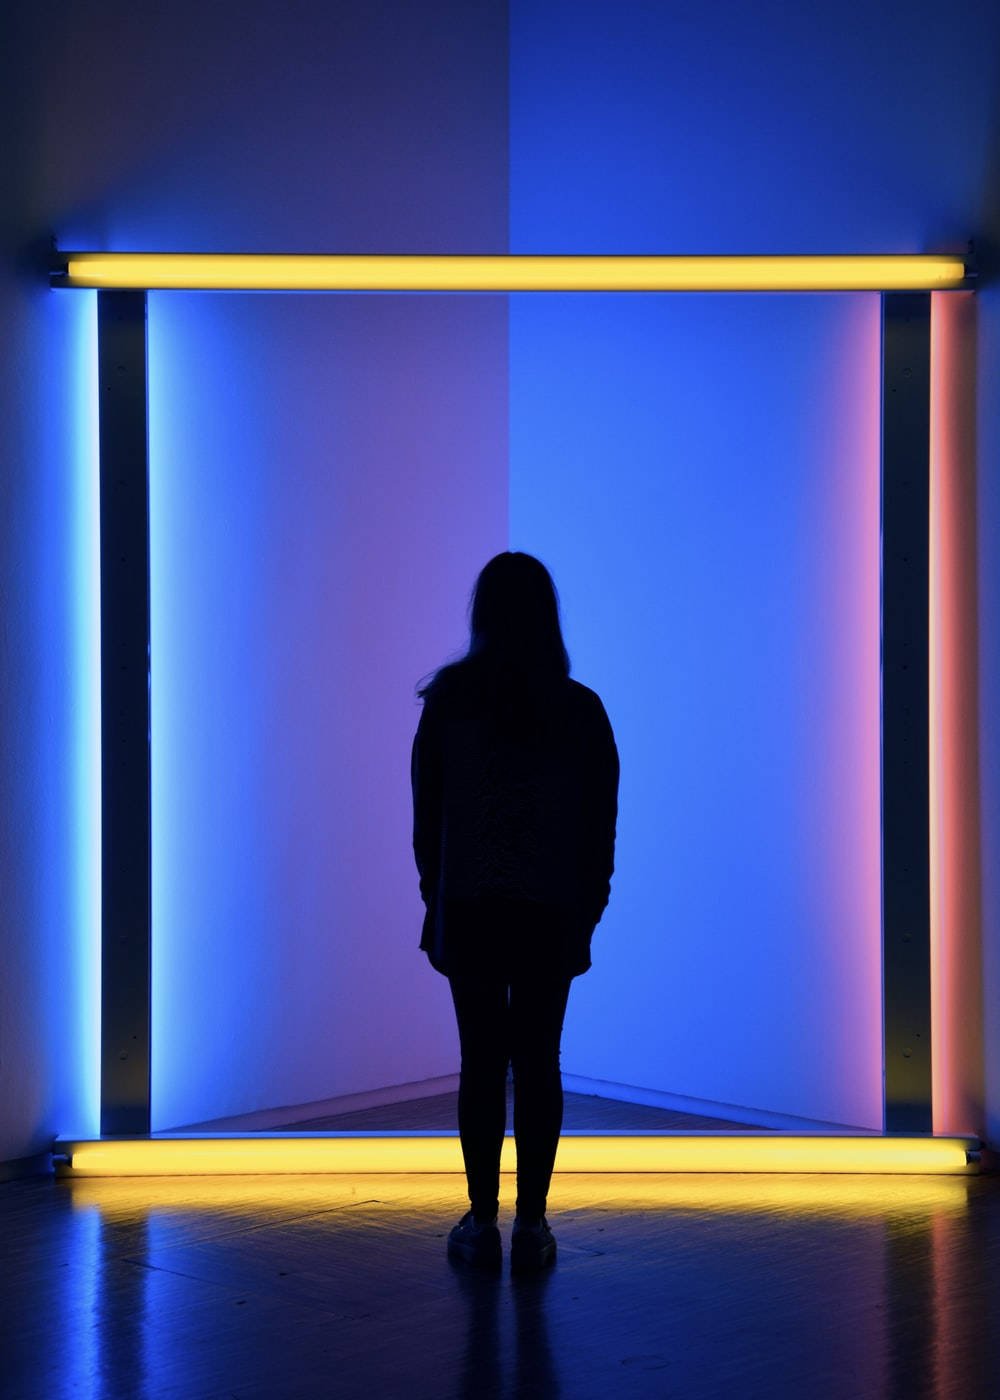 silhouette of woman standing beside yellow light bars